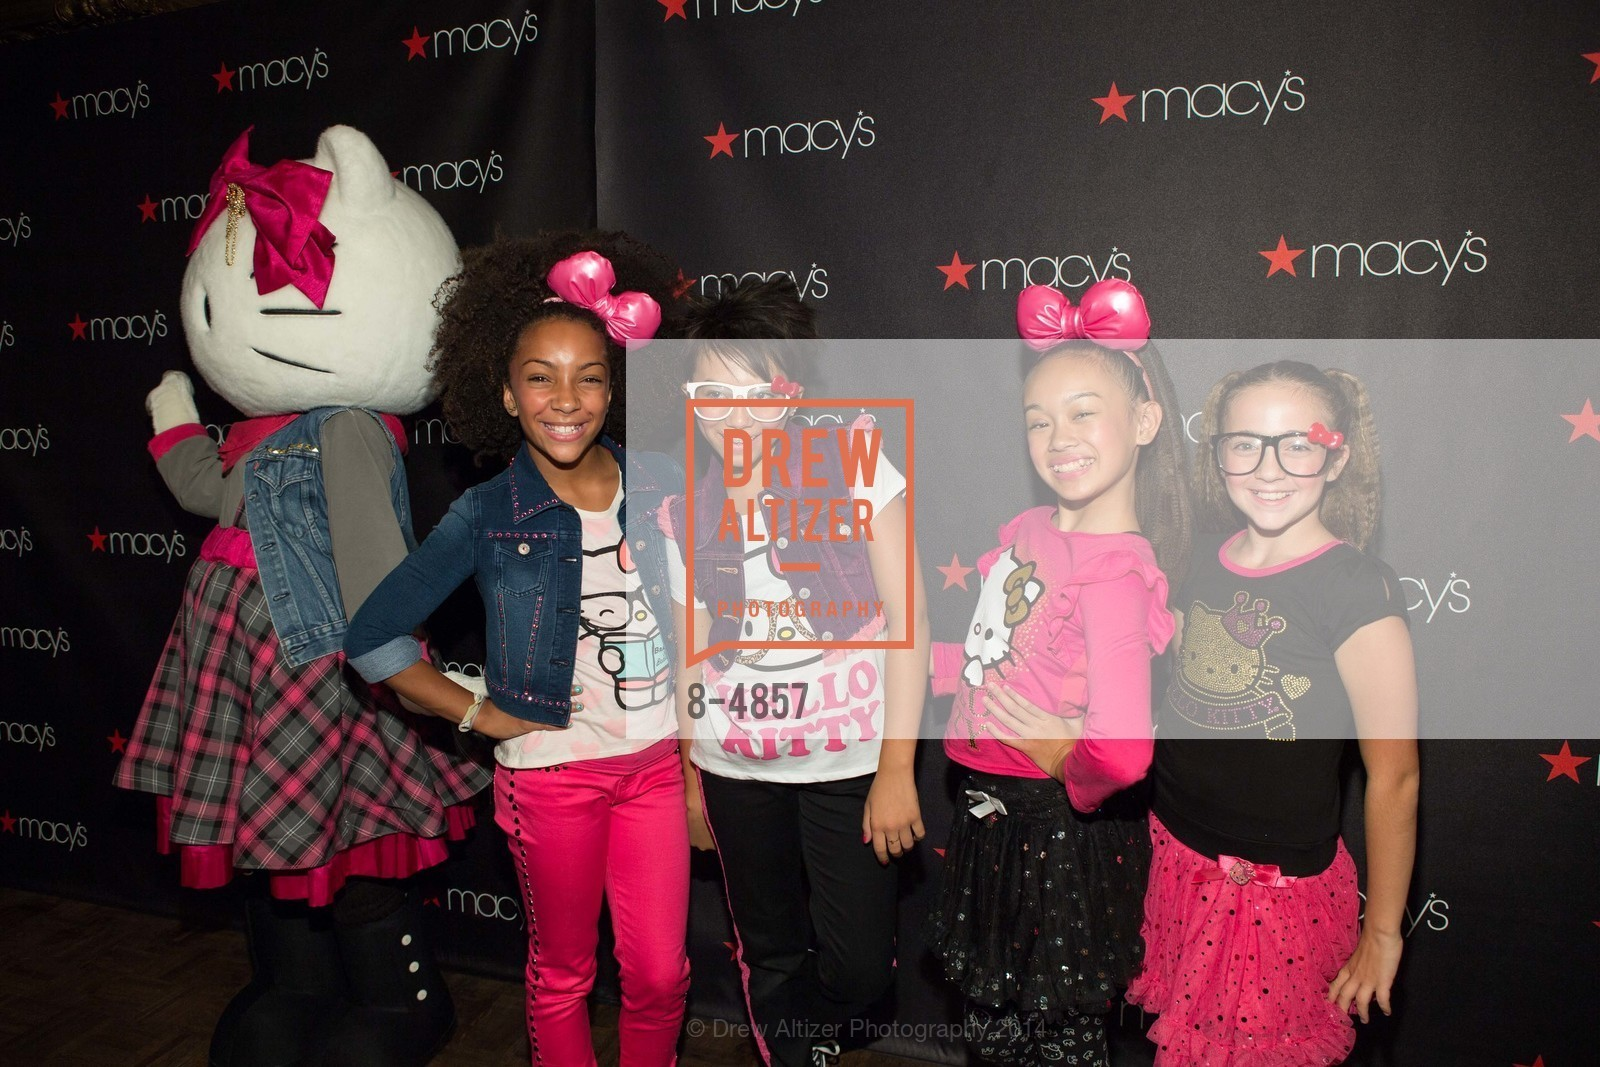 Helly Kitty And Kids In The Show, Photo #8-4857